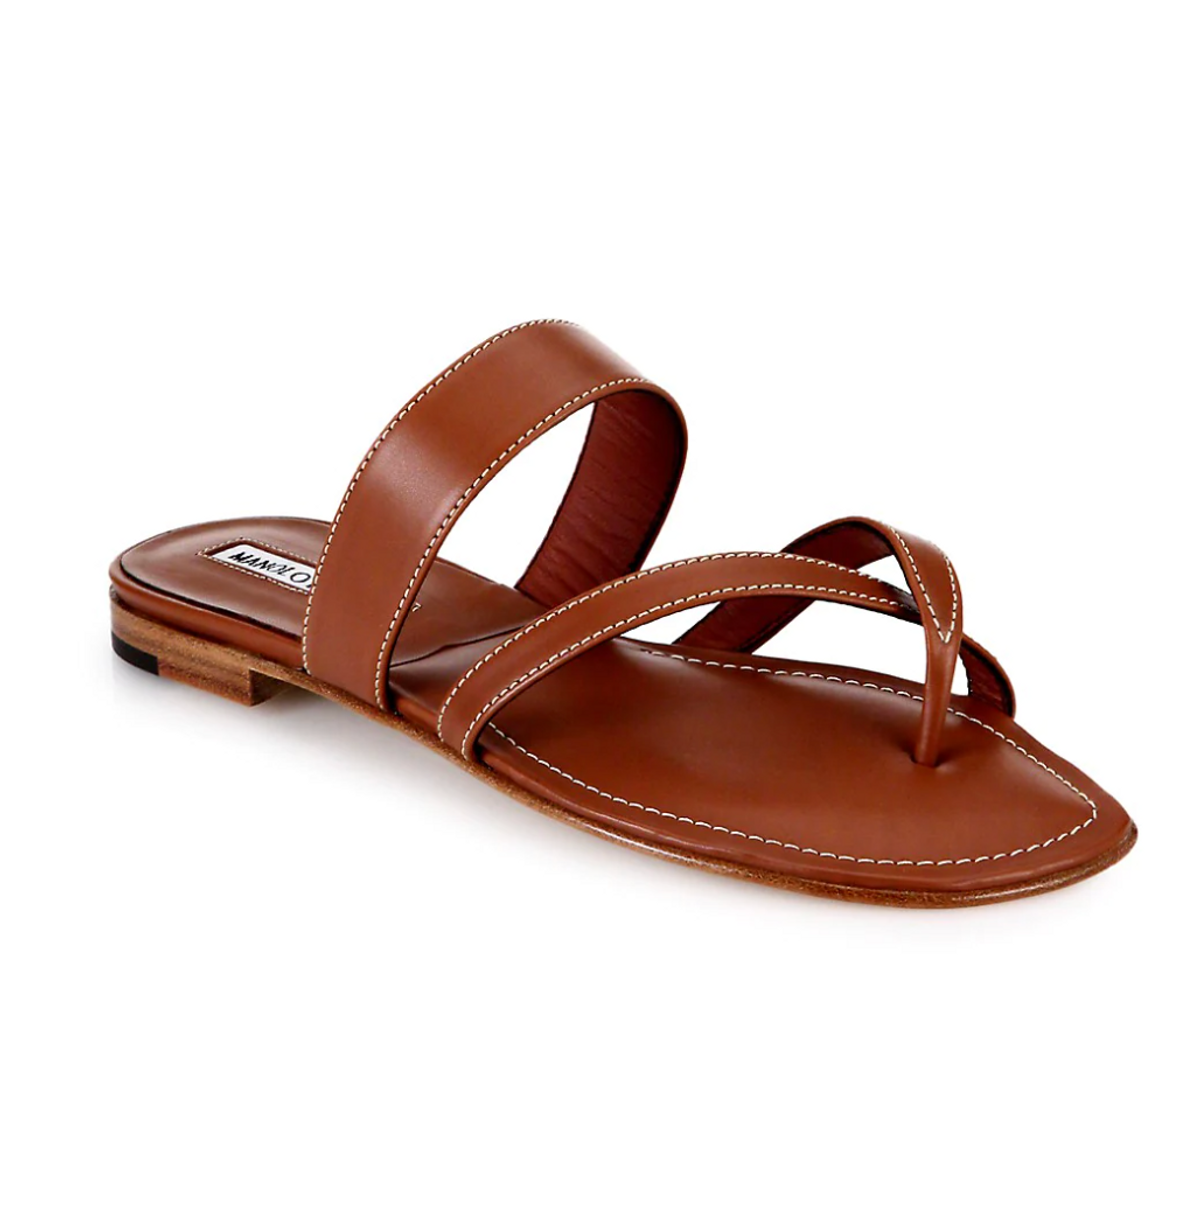 Susa Leather Thong Sandals